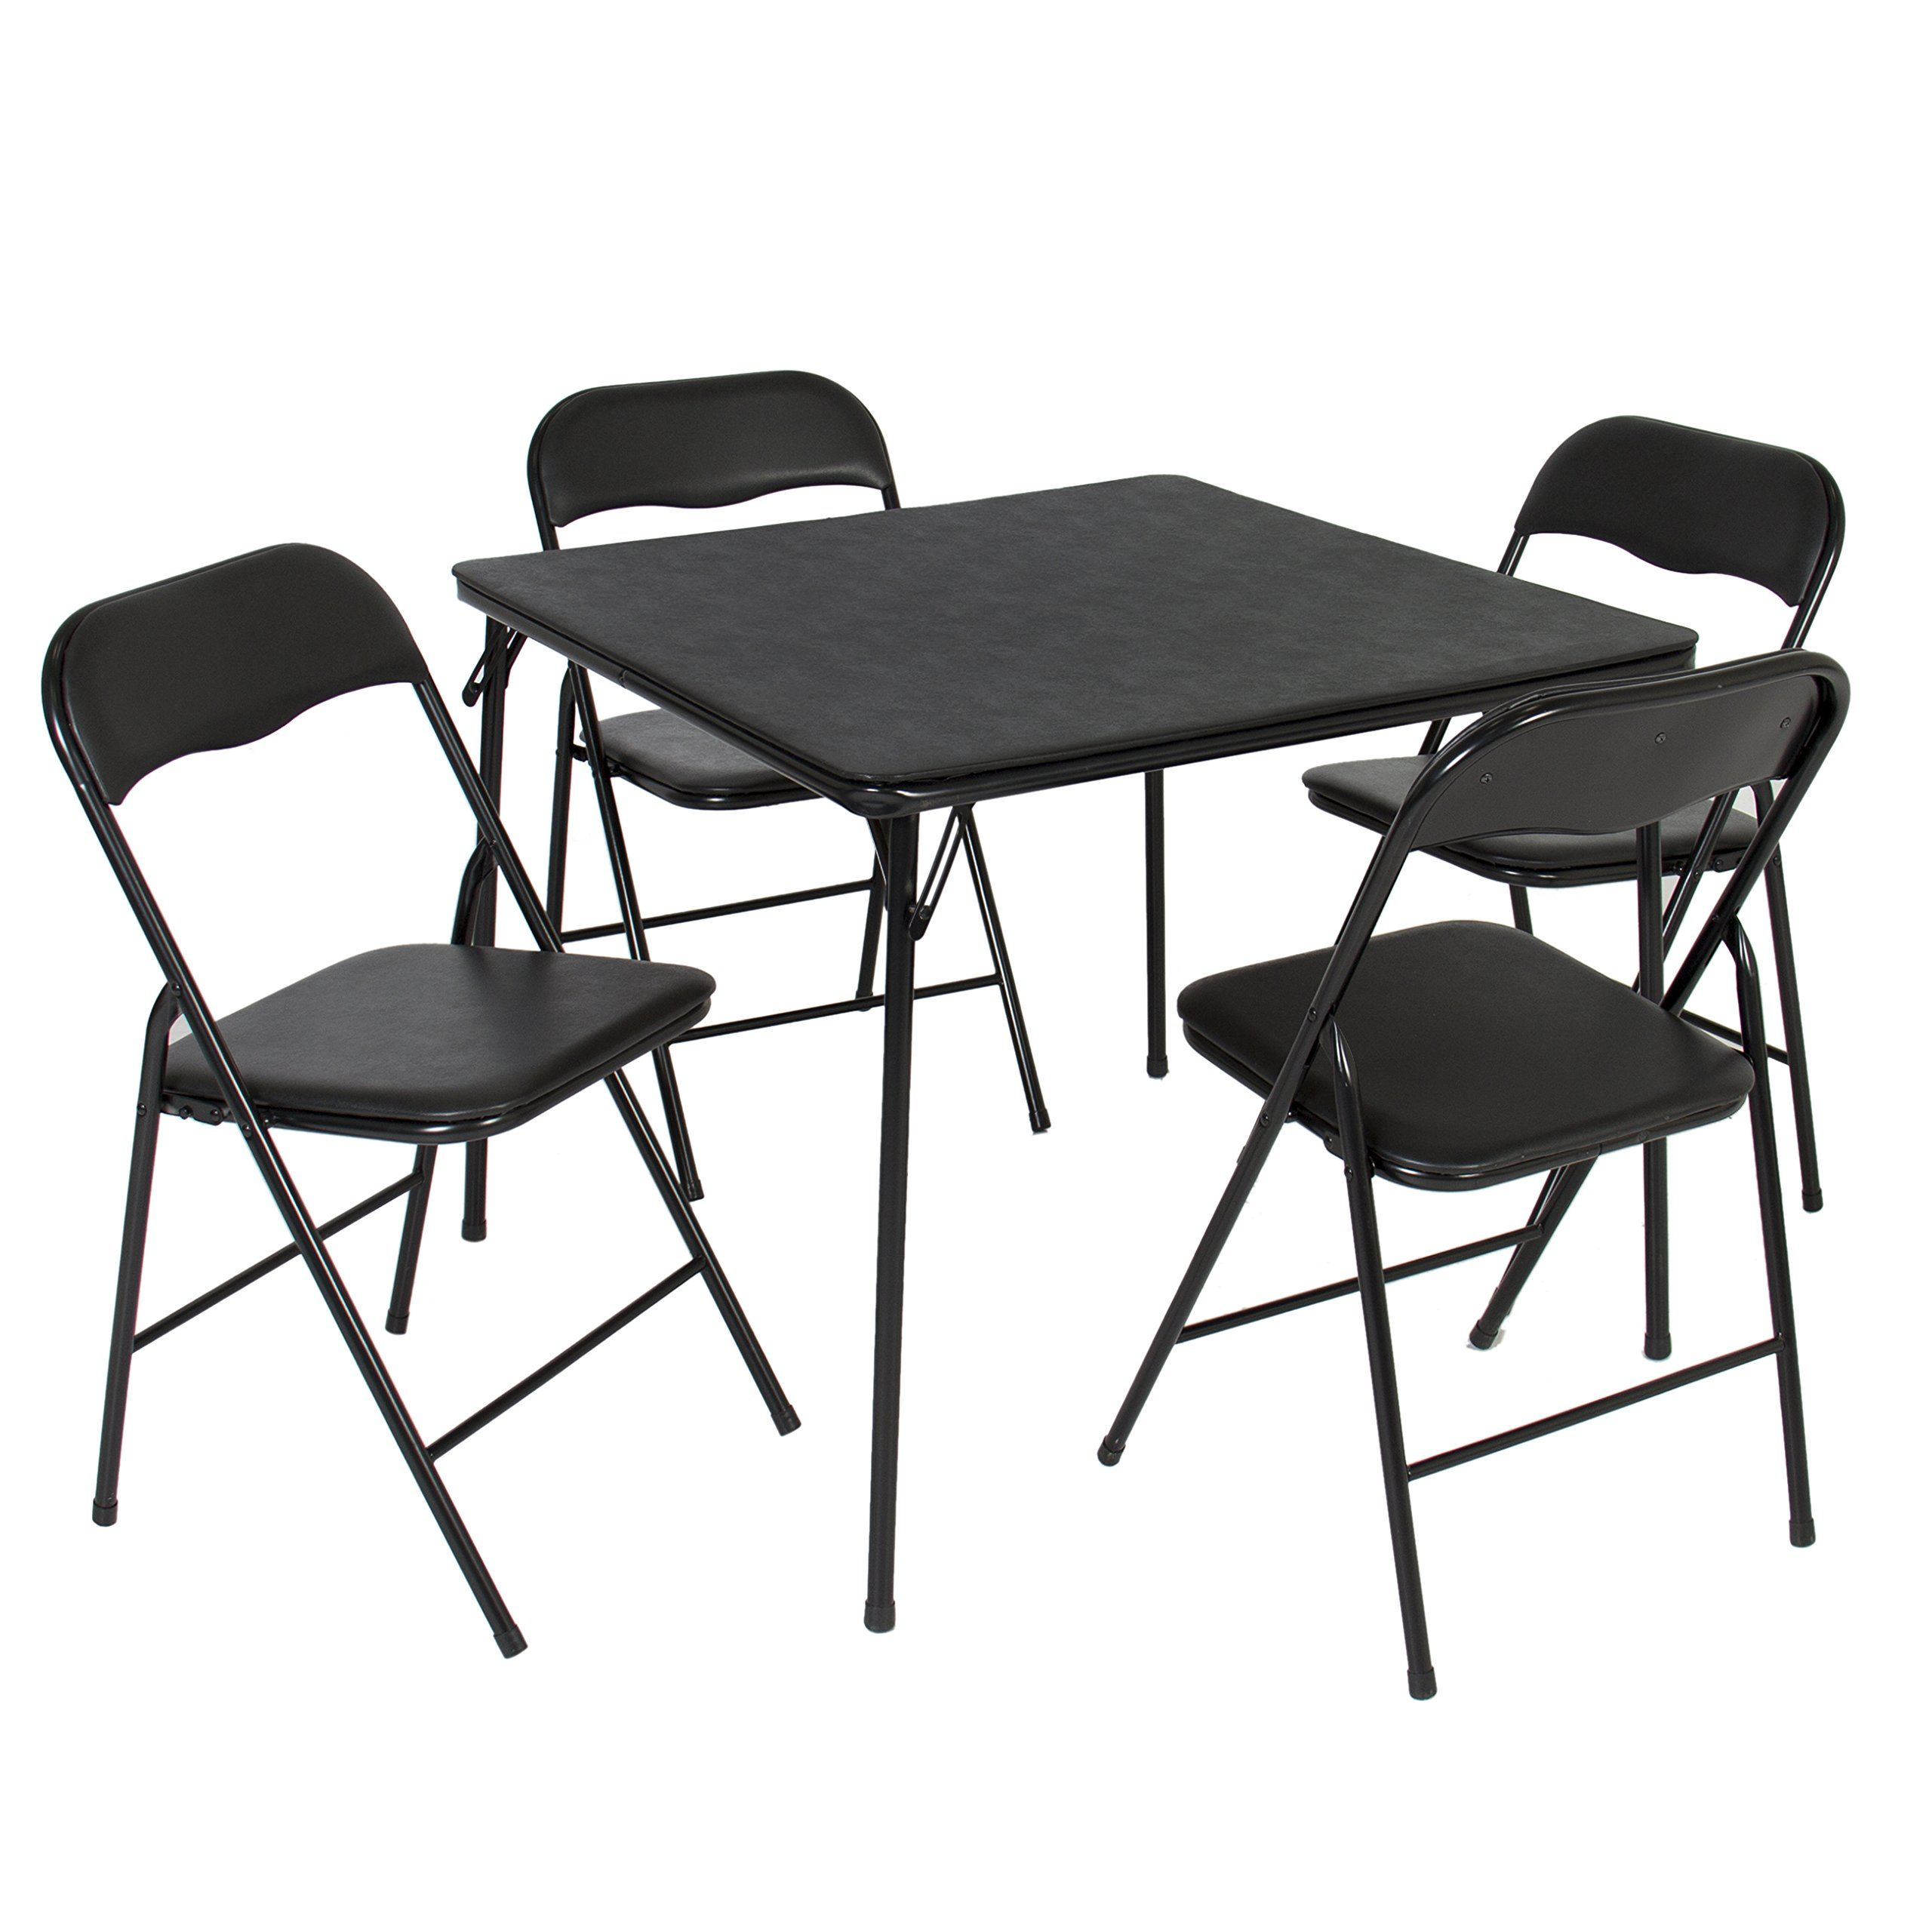 Best Choice Products 5 Piece Home Multipurpose Dining Set W Folding Table And Chairs Black